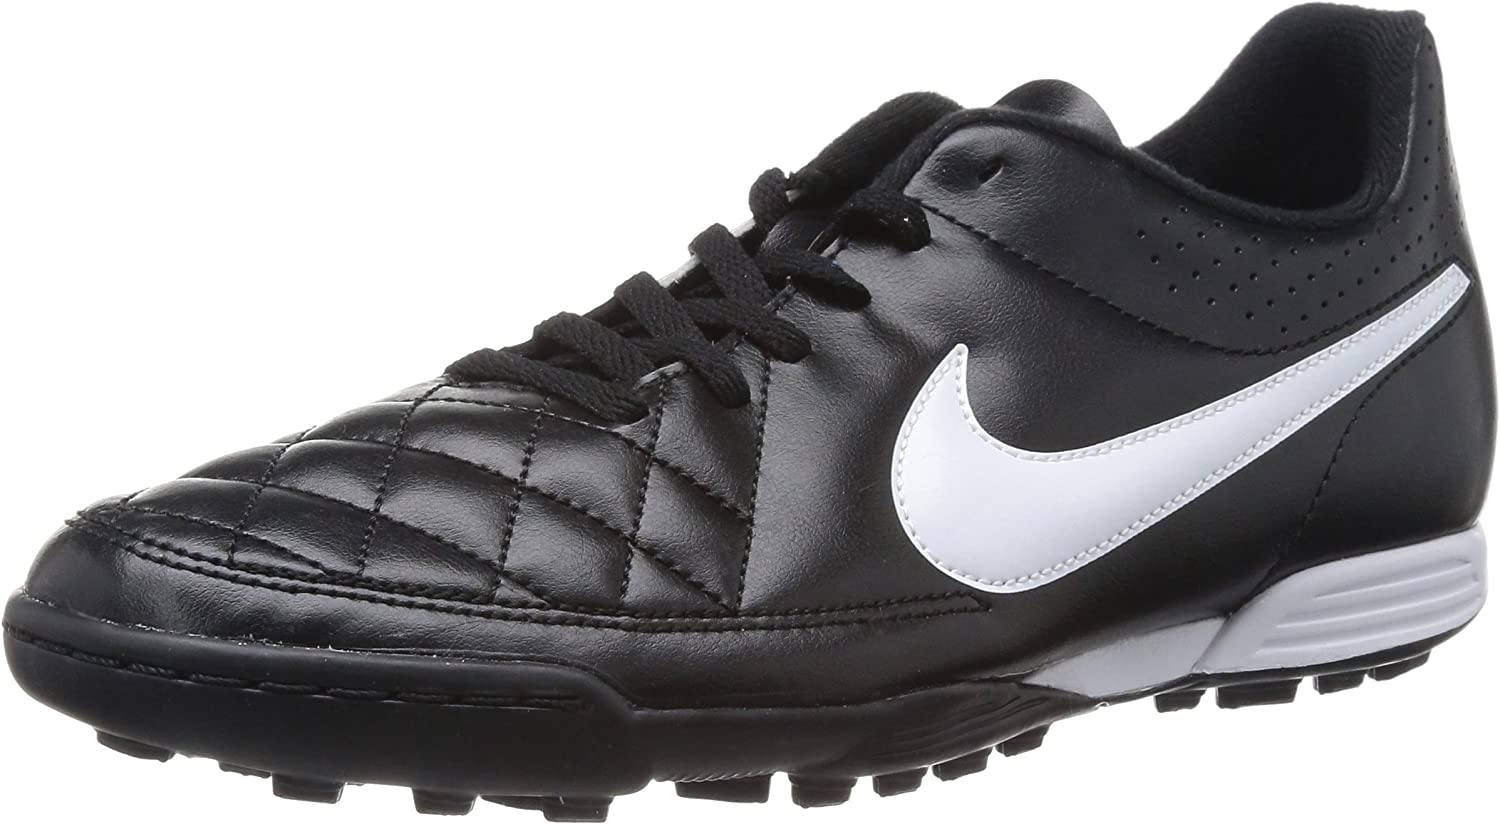 Nike Tiempo Rio II TF Men's Football Trainers - Black White